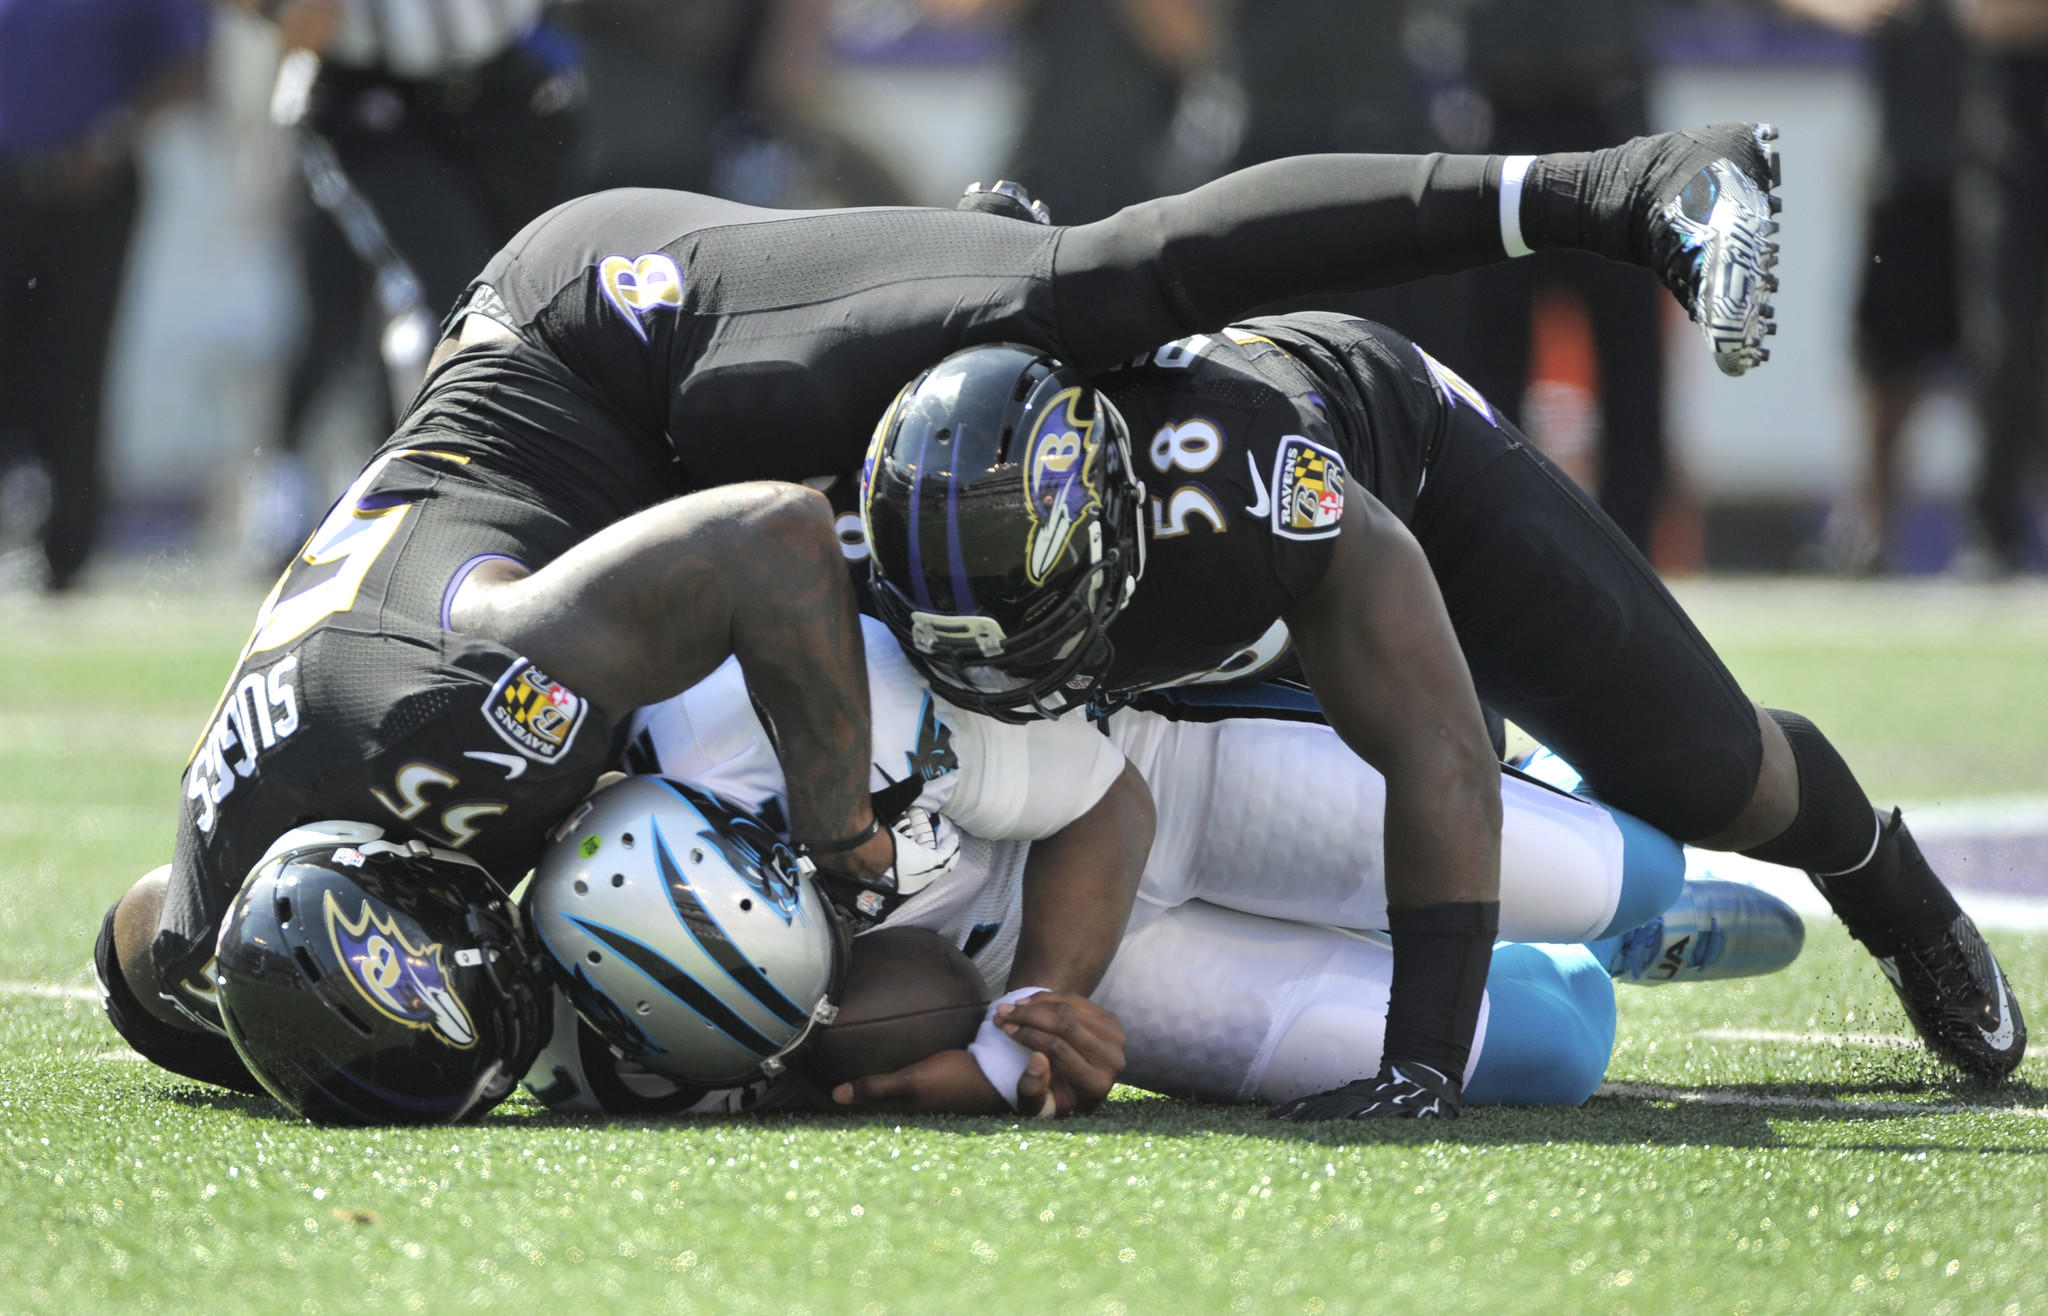 Ravens linebackers Terrell Suggs, left, and Elvis Dumervil, right, sack Carolina Panthers quarterback Cam Newton in the first quarter at M&T Bank Stadium.